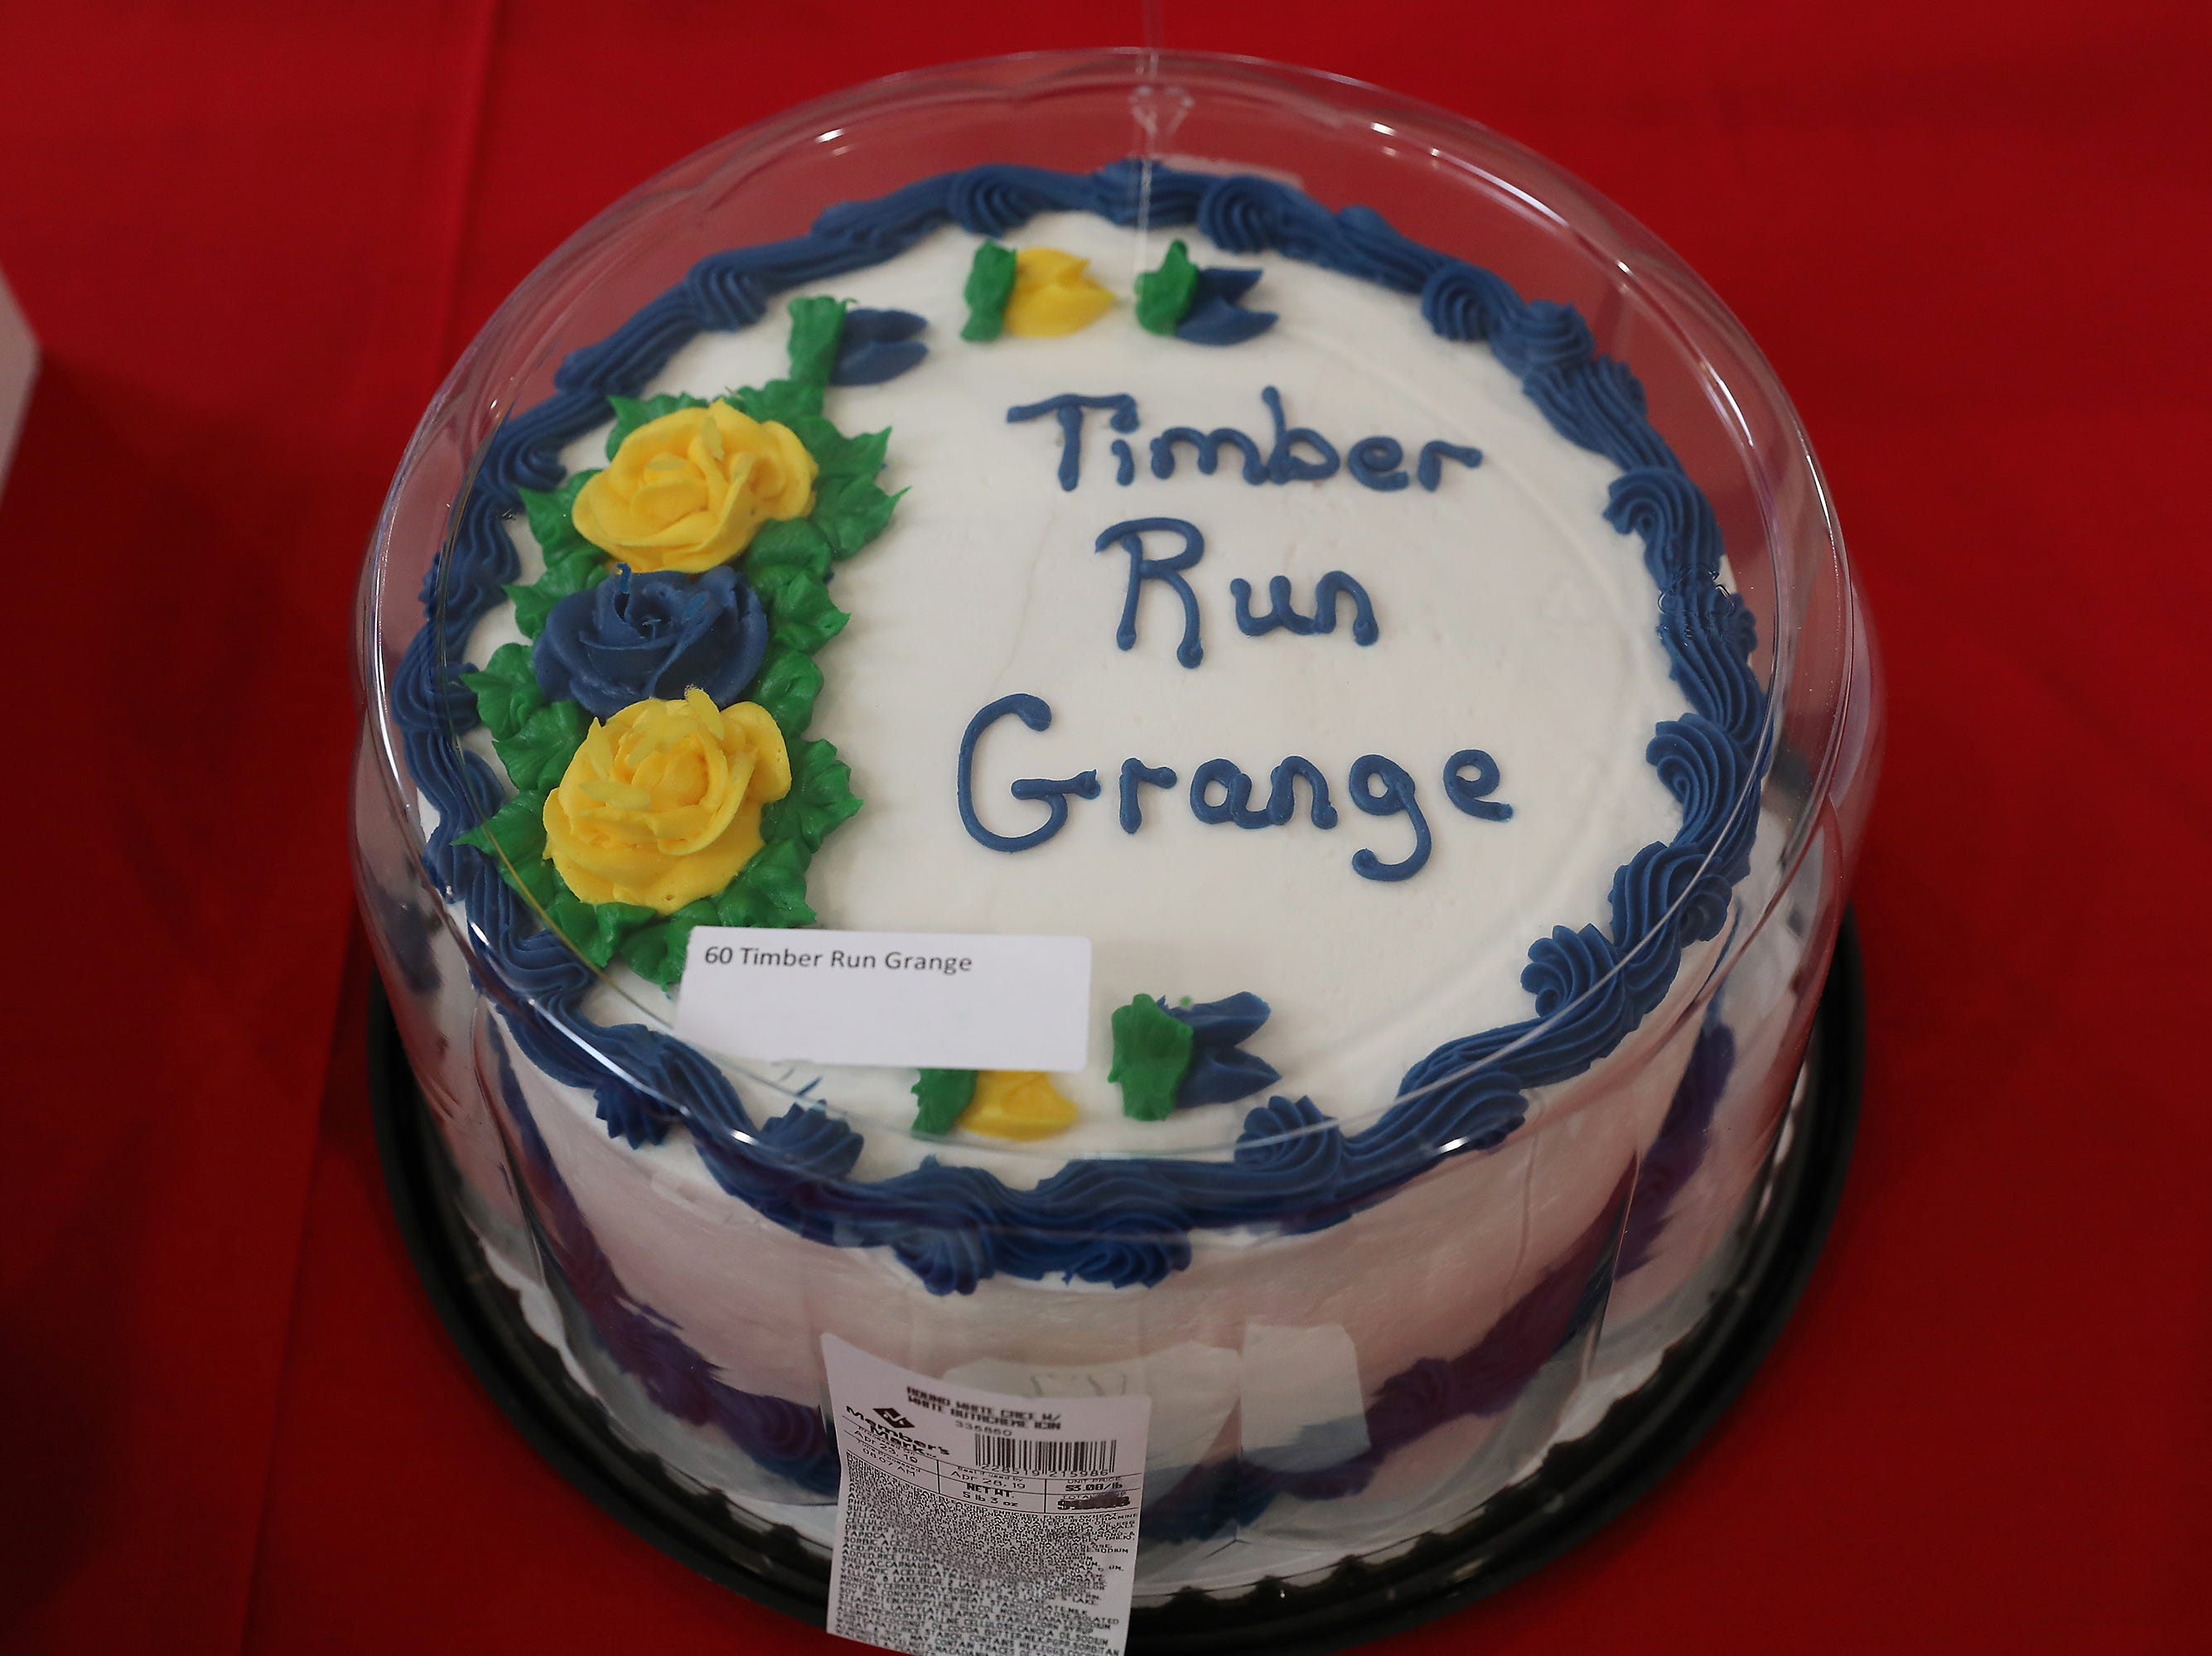 10:45 A.M. Thursday cake 60 Timber Run Grange - 1 night cabin stay at Friendly Hill Campgroun; $75